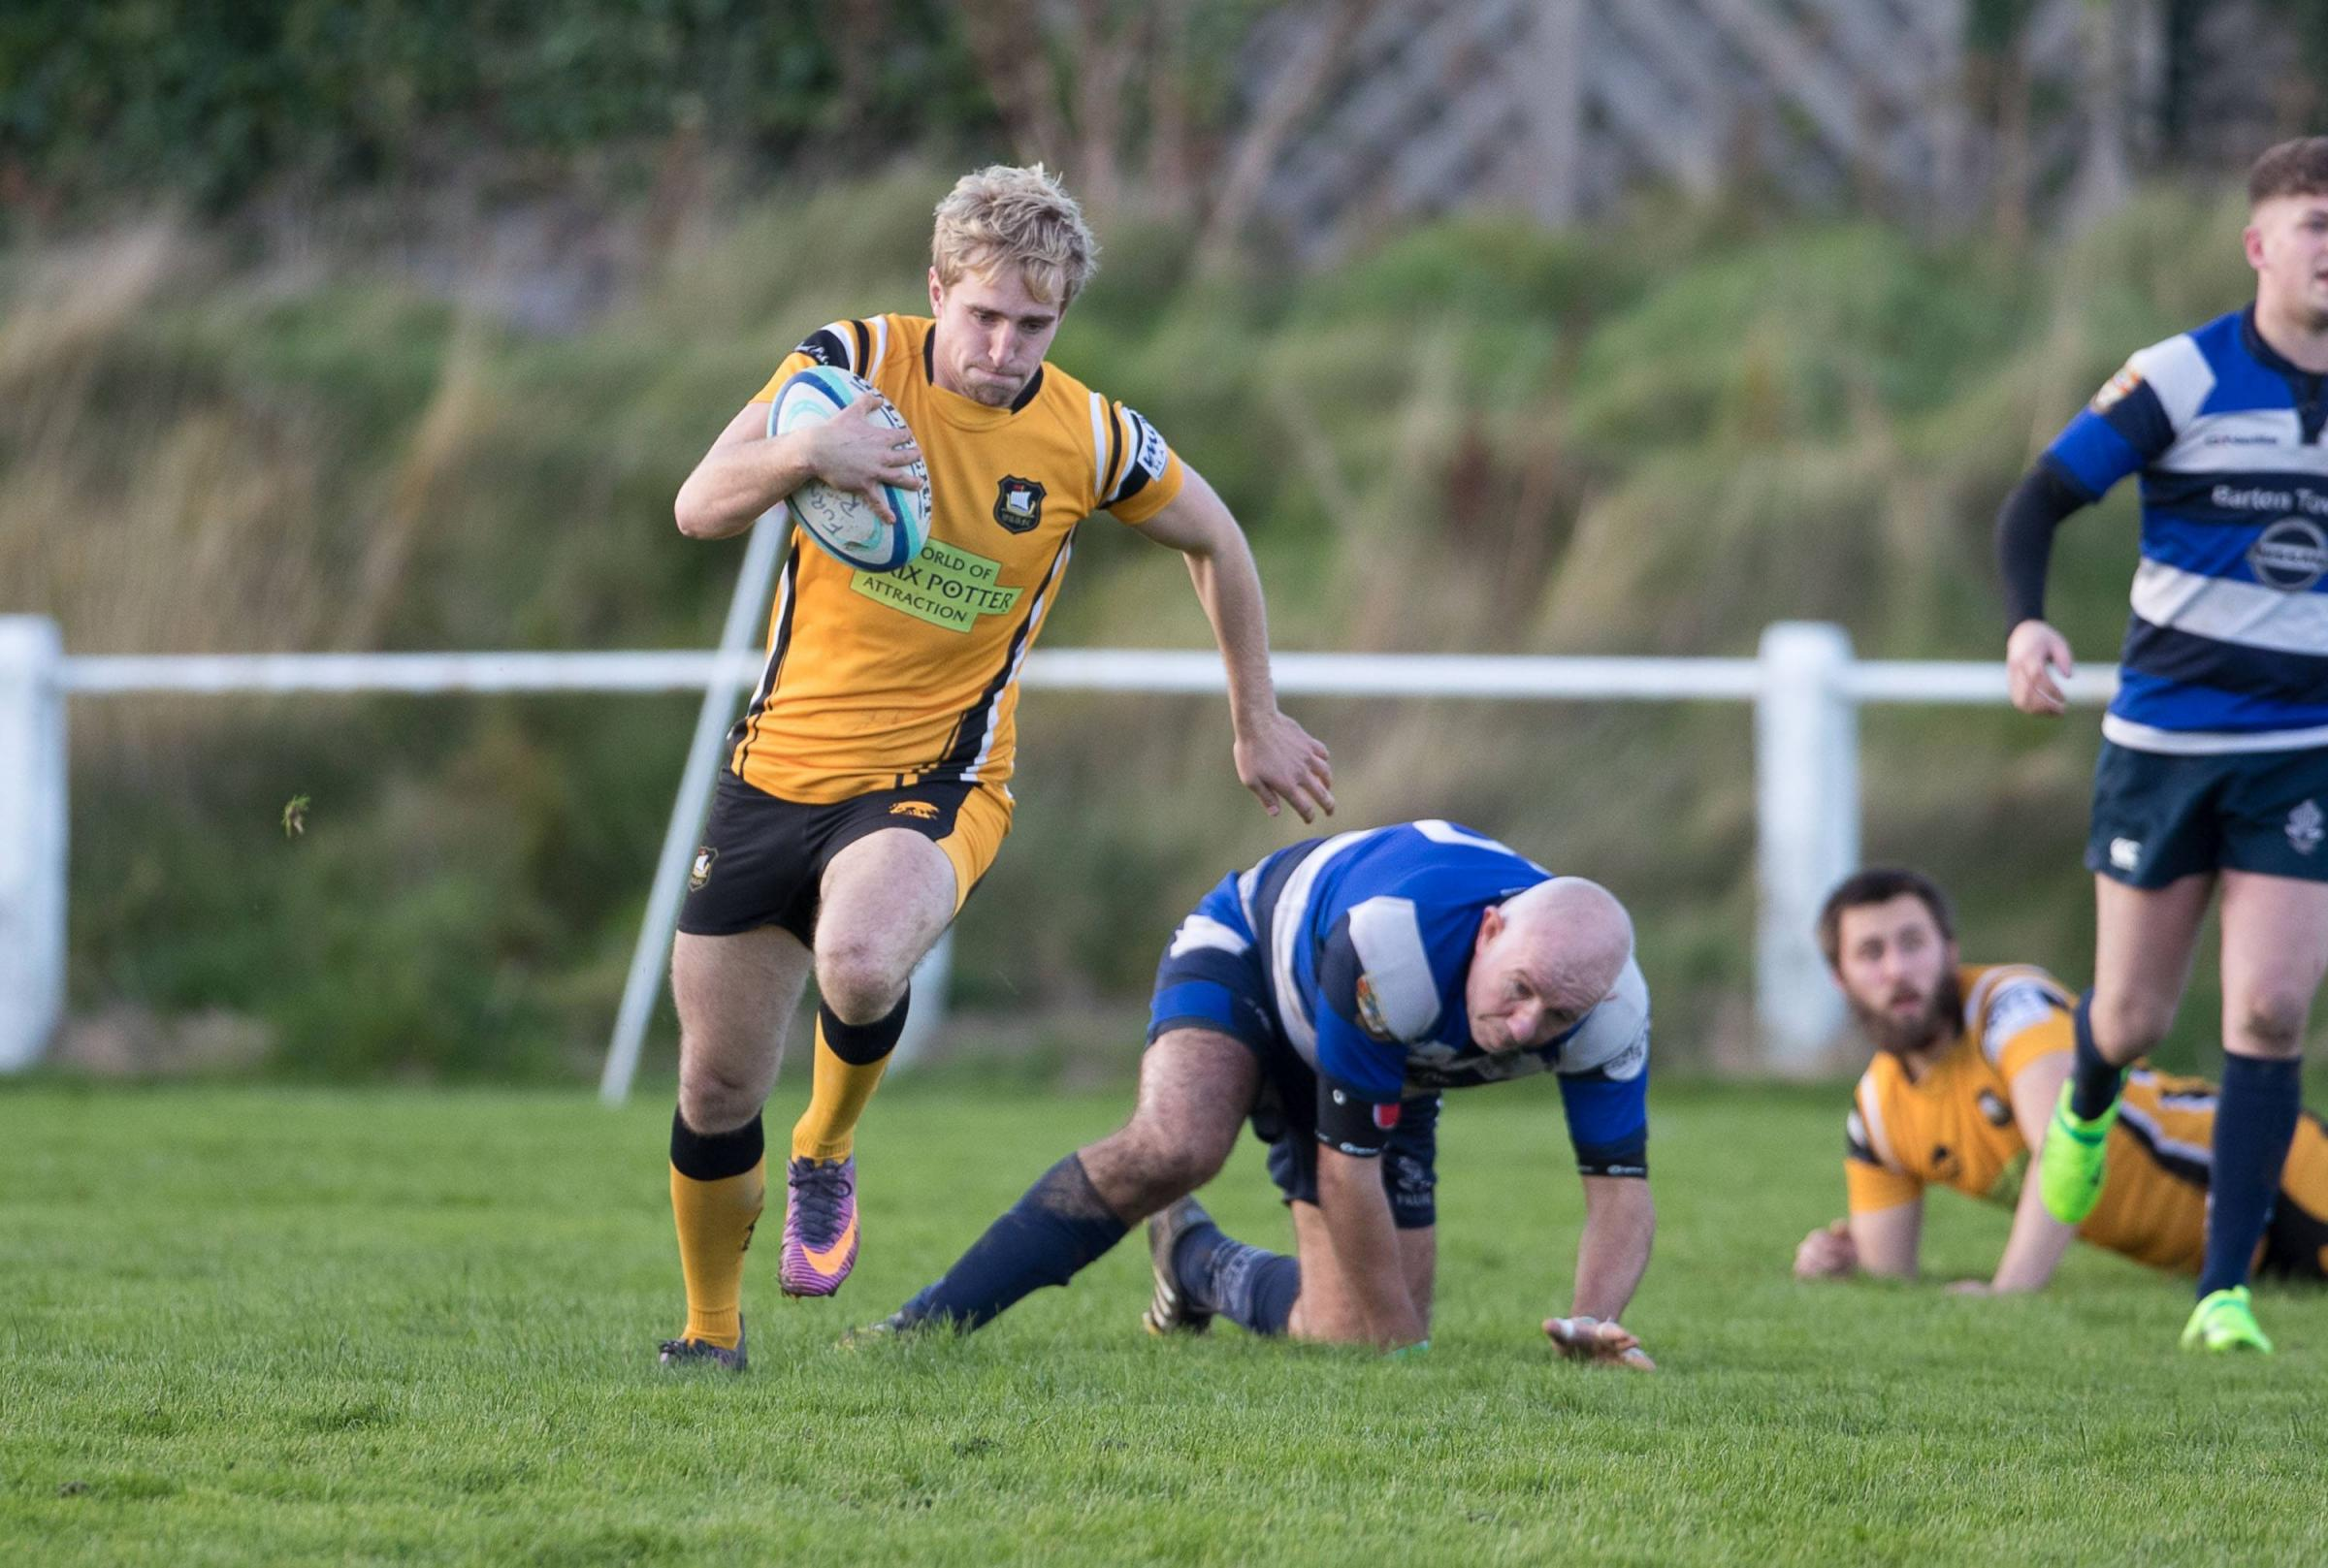 FURNESS V WINDERMERE RUGBY UNION. Strawberry Grounds, Barrow. Windermere's Bertie Hodgson. 4th November 2017. CHRIS WEST.